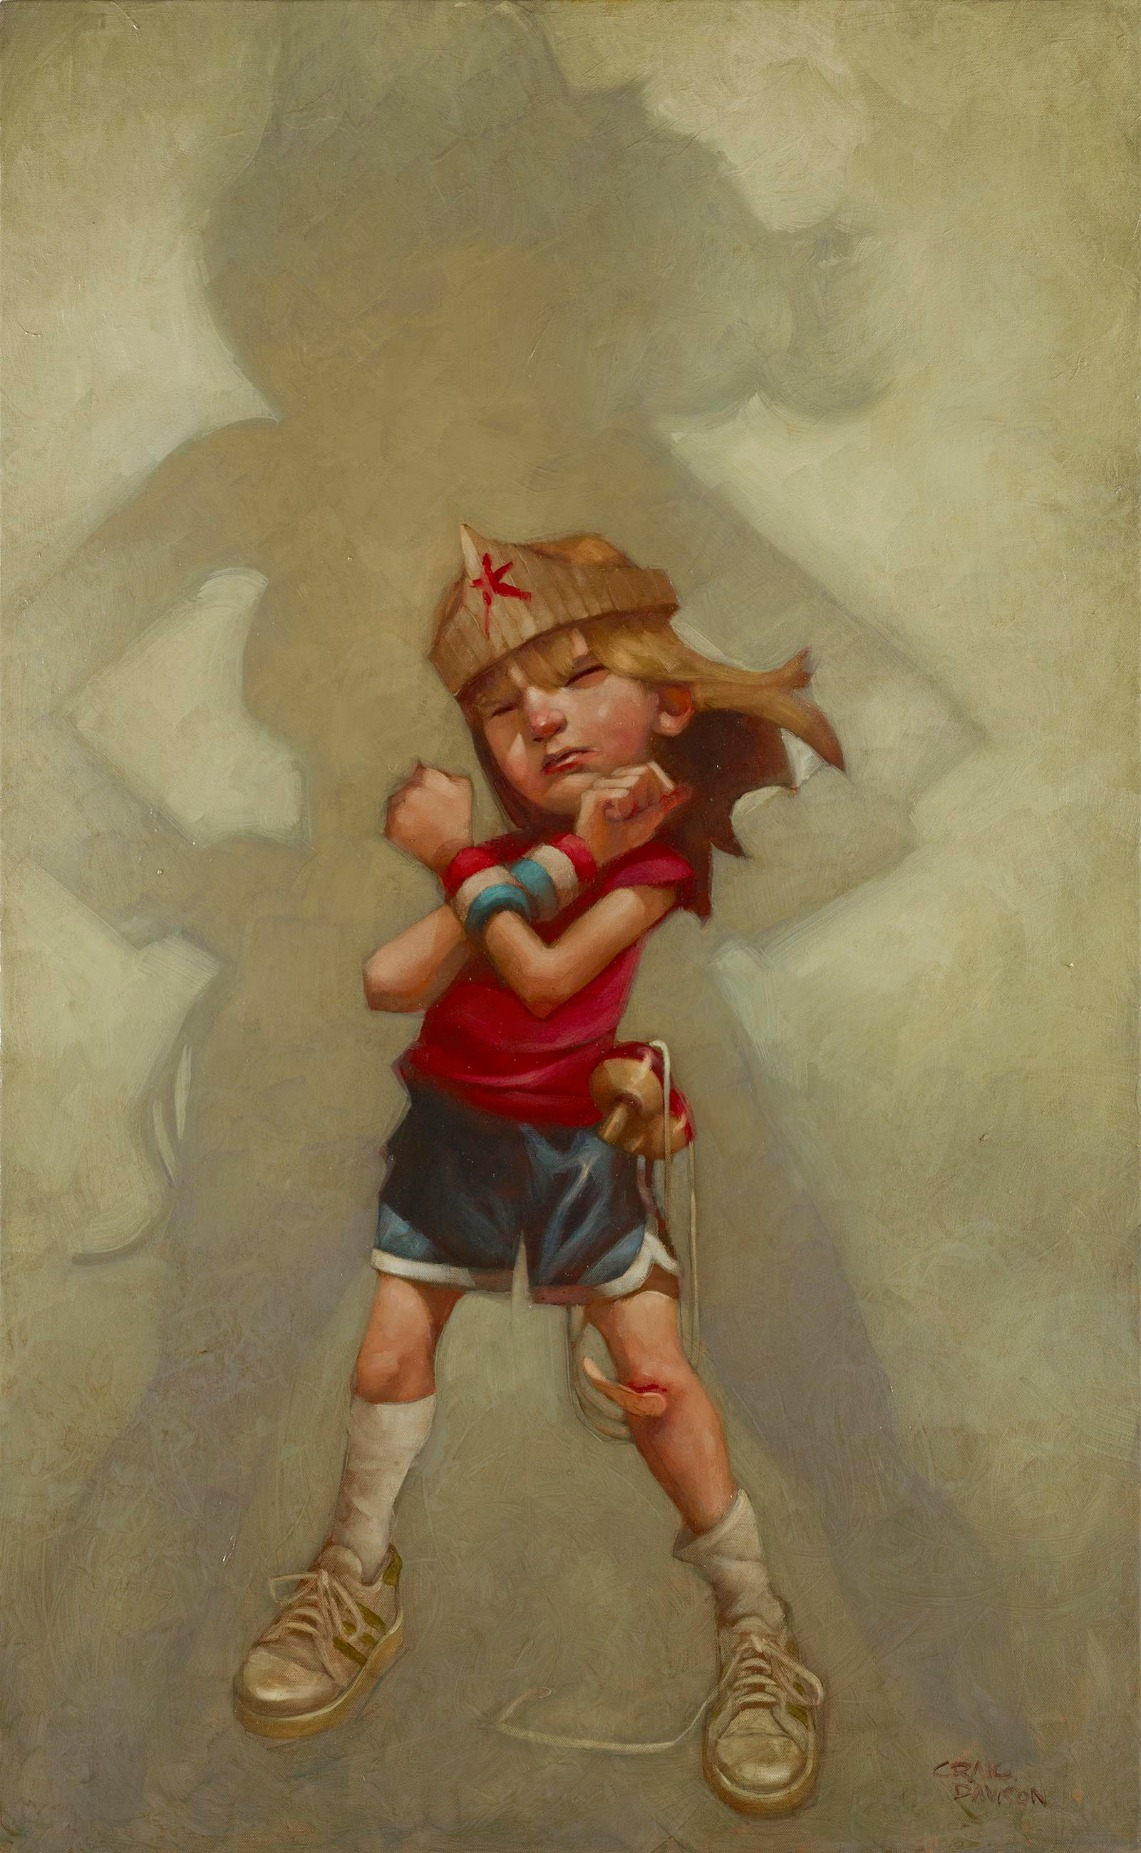 Days of Wonder by Craig Davison, Comic | Family | Children | Nostalgic | Film | Rare